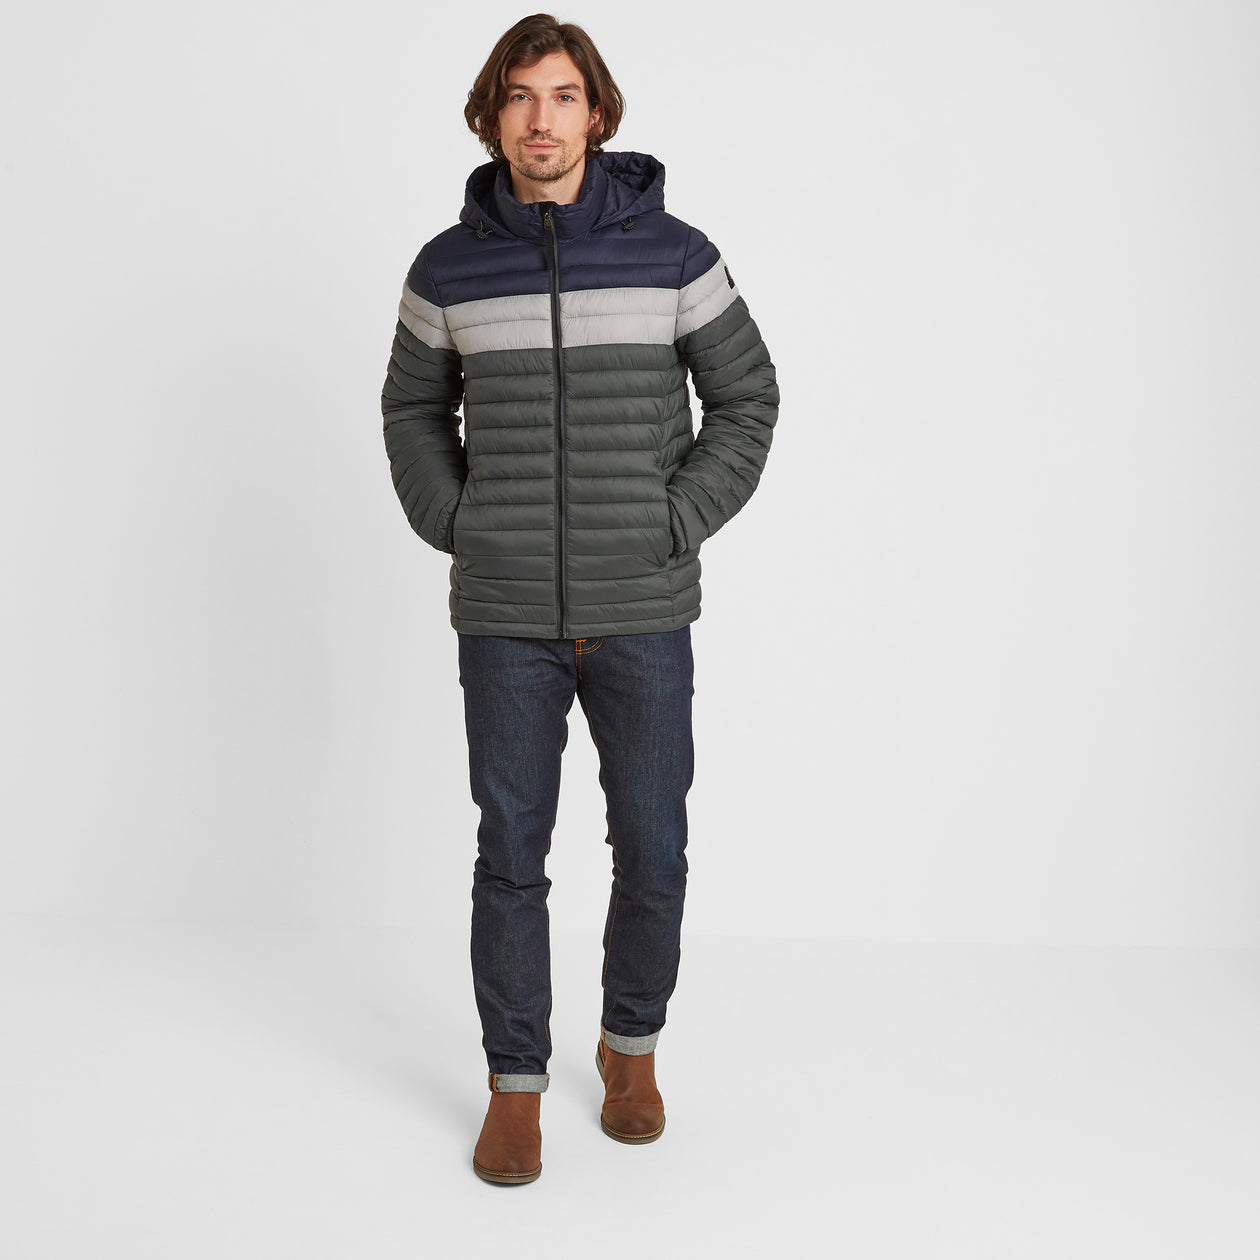 Helme Mens Padded Jacket - Pine Green Striped image 4